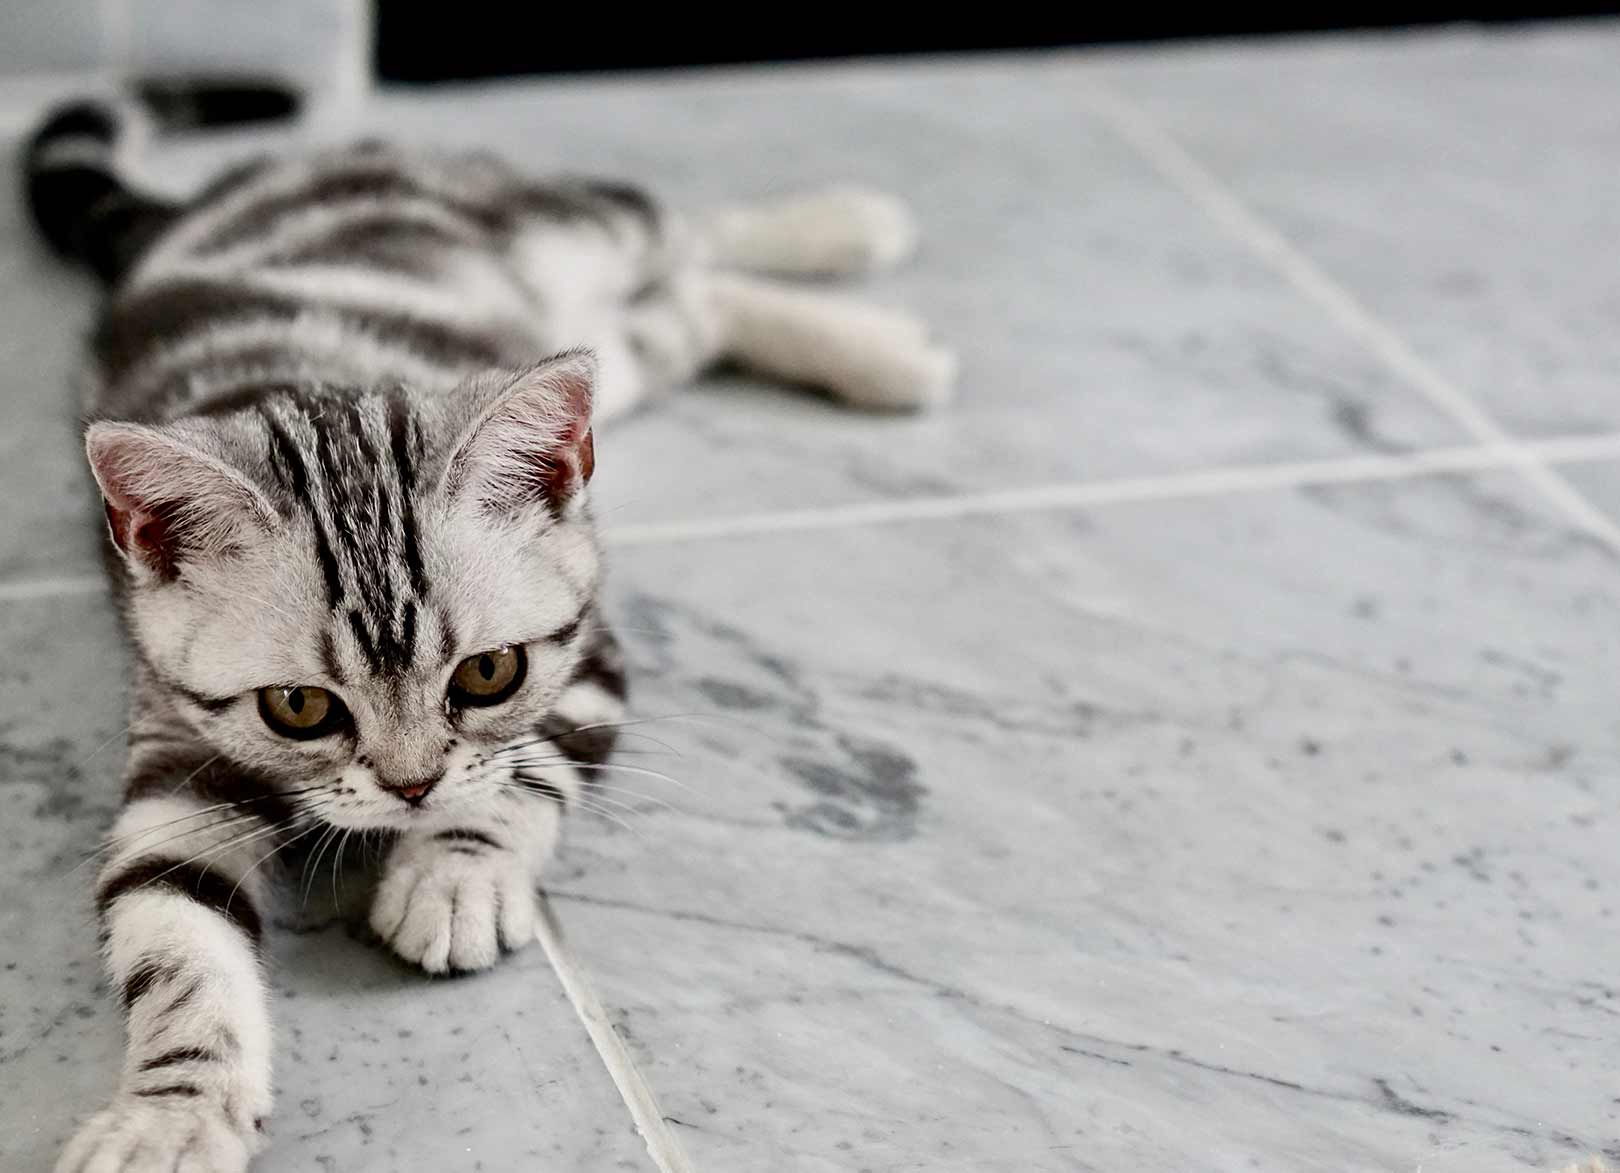 Grey tabby kitten relaxing on warm floor with underfloor heating mat